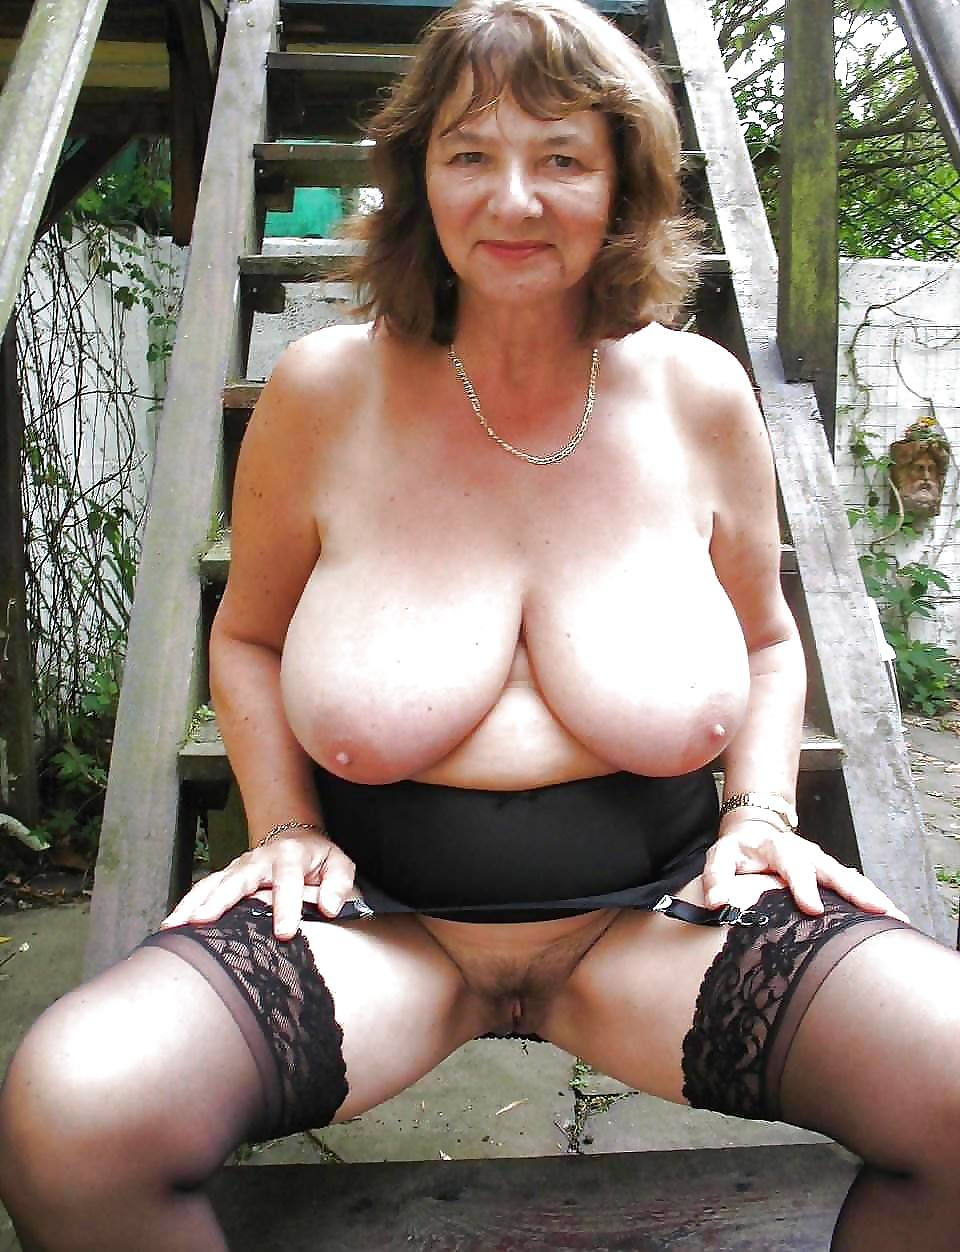 Beautiful big breasted mature women